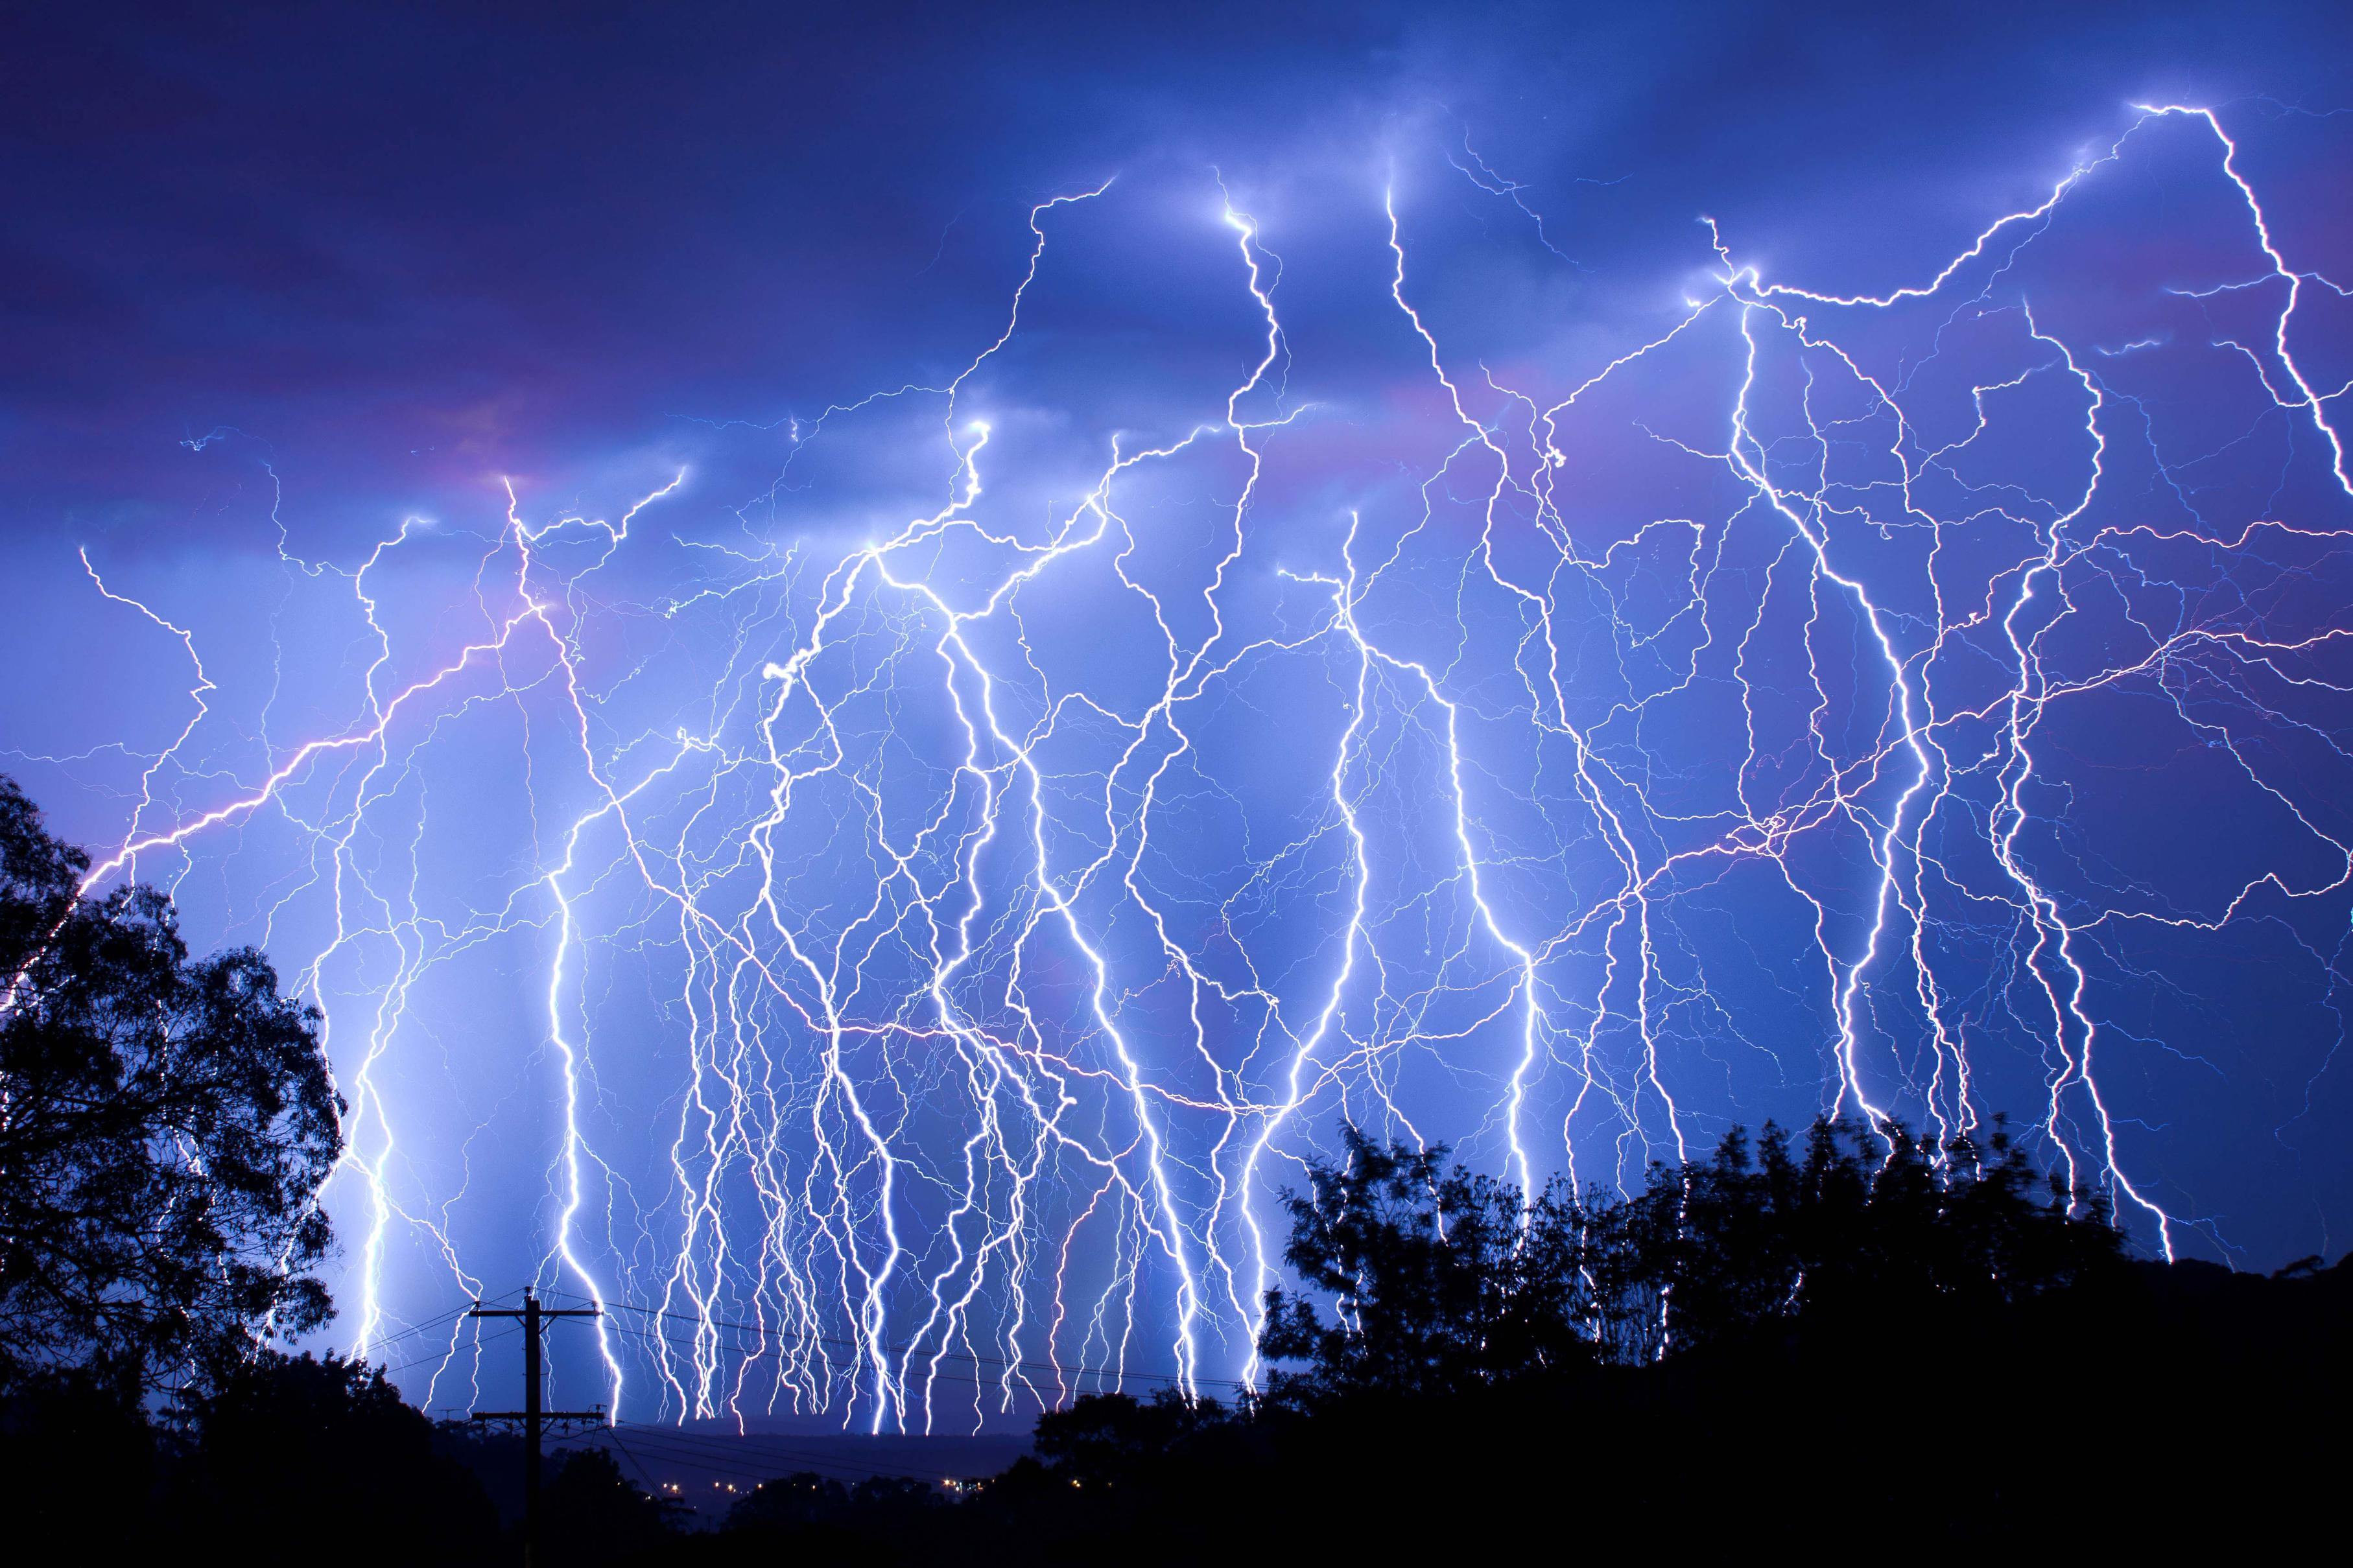 Lightning Wallpapers HD 3629x2419